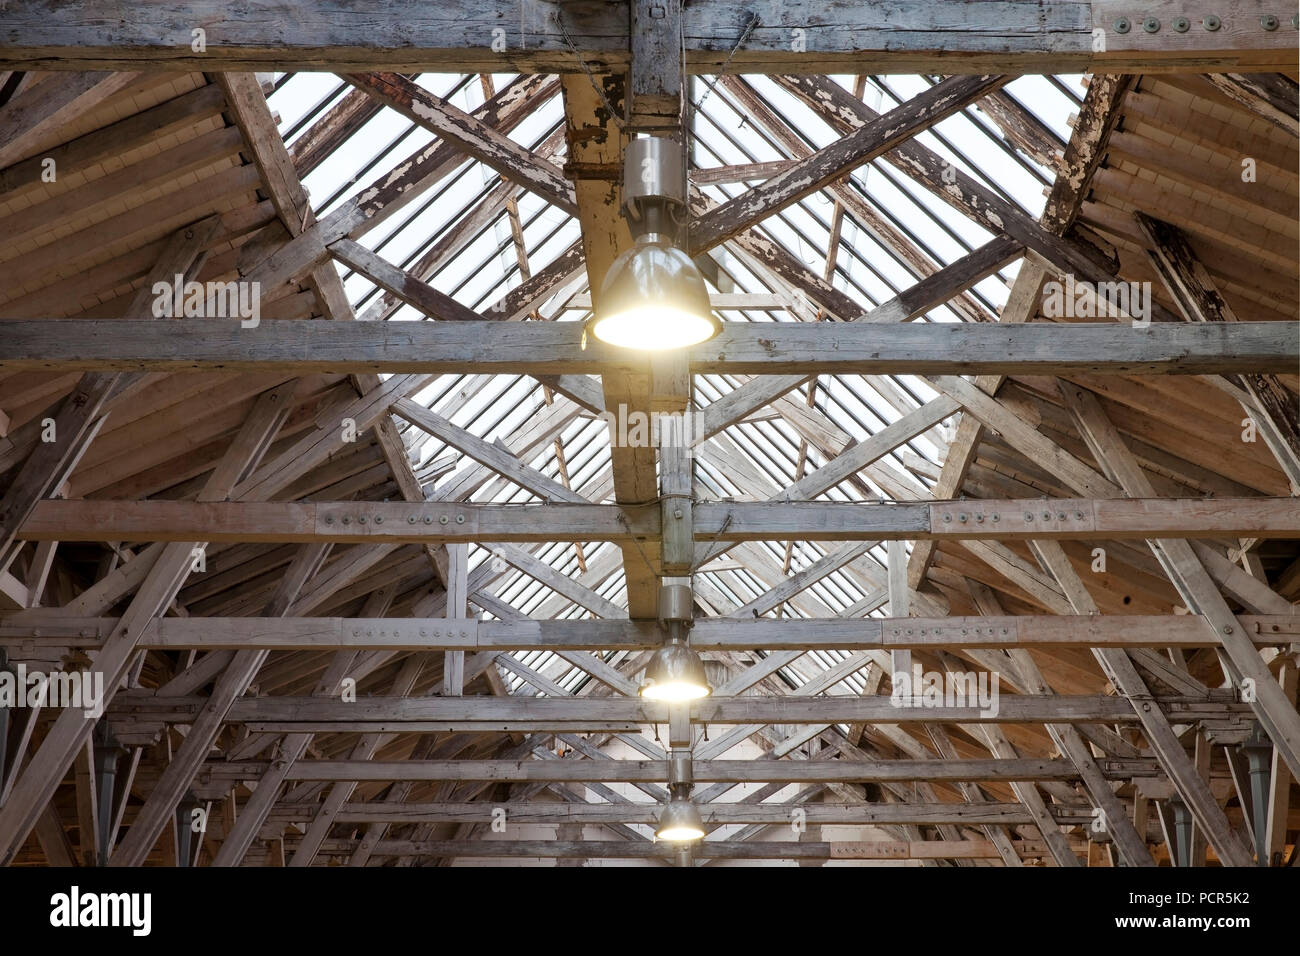 Old turning shop, interior view of the unique in Germany roof construction with wooden support on cast-iron columns - Stock Image